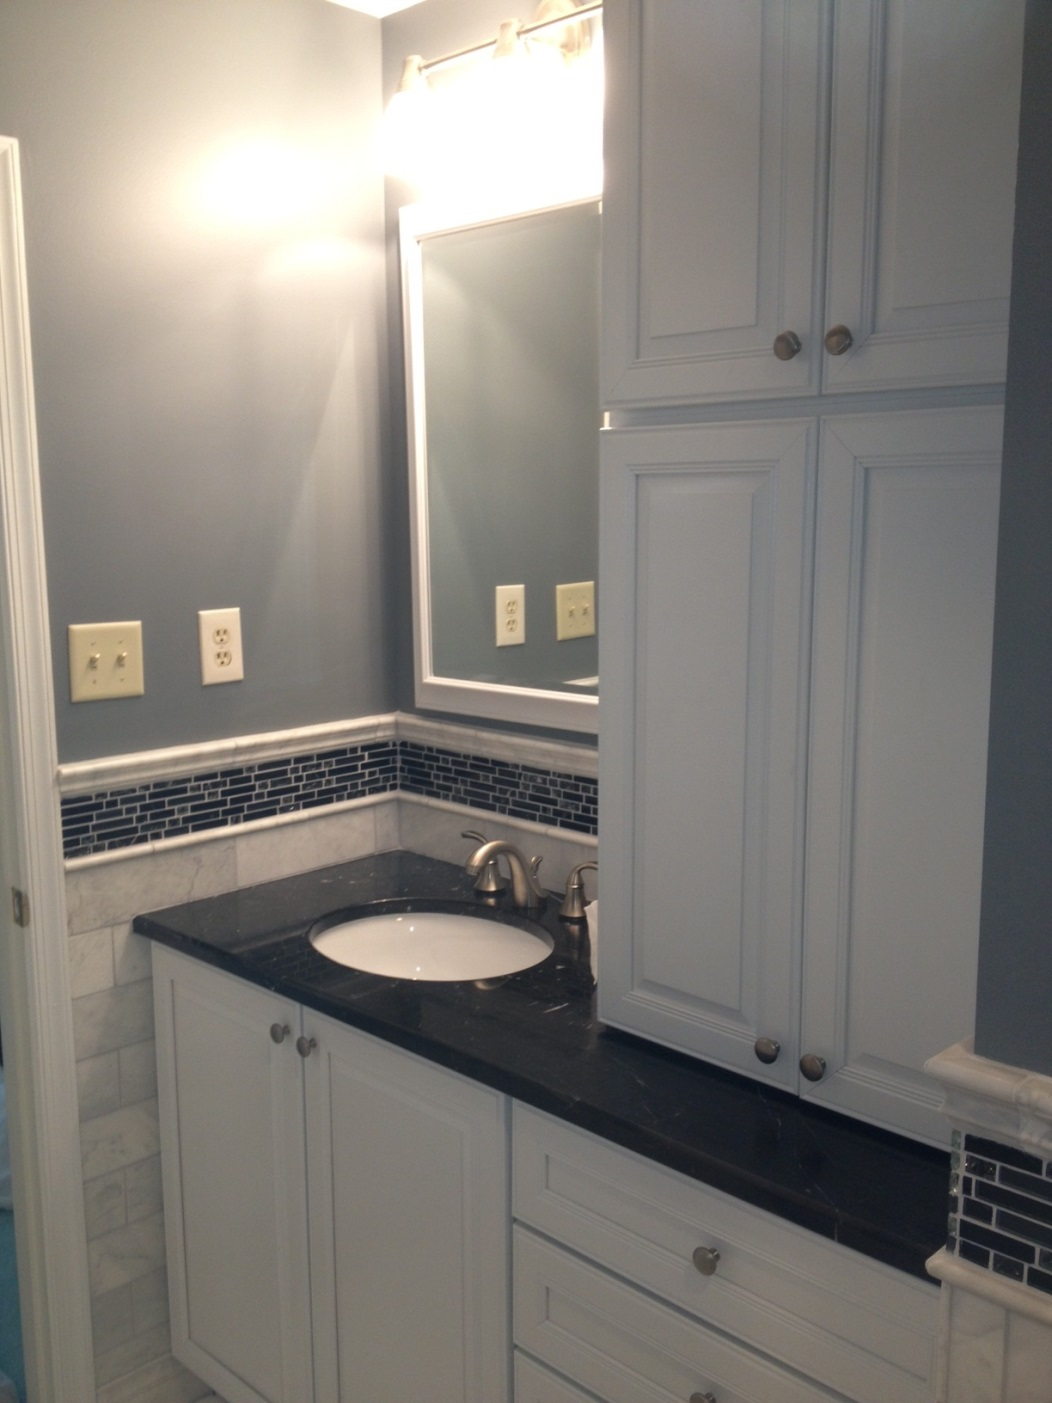 M R Contracting - Kitchen remodeling silver spring md